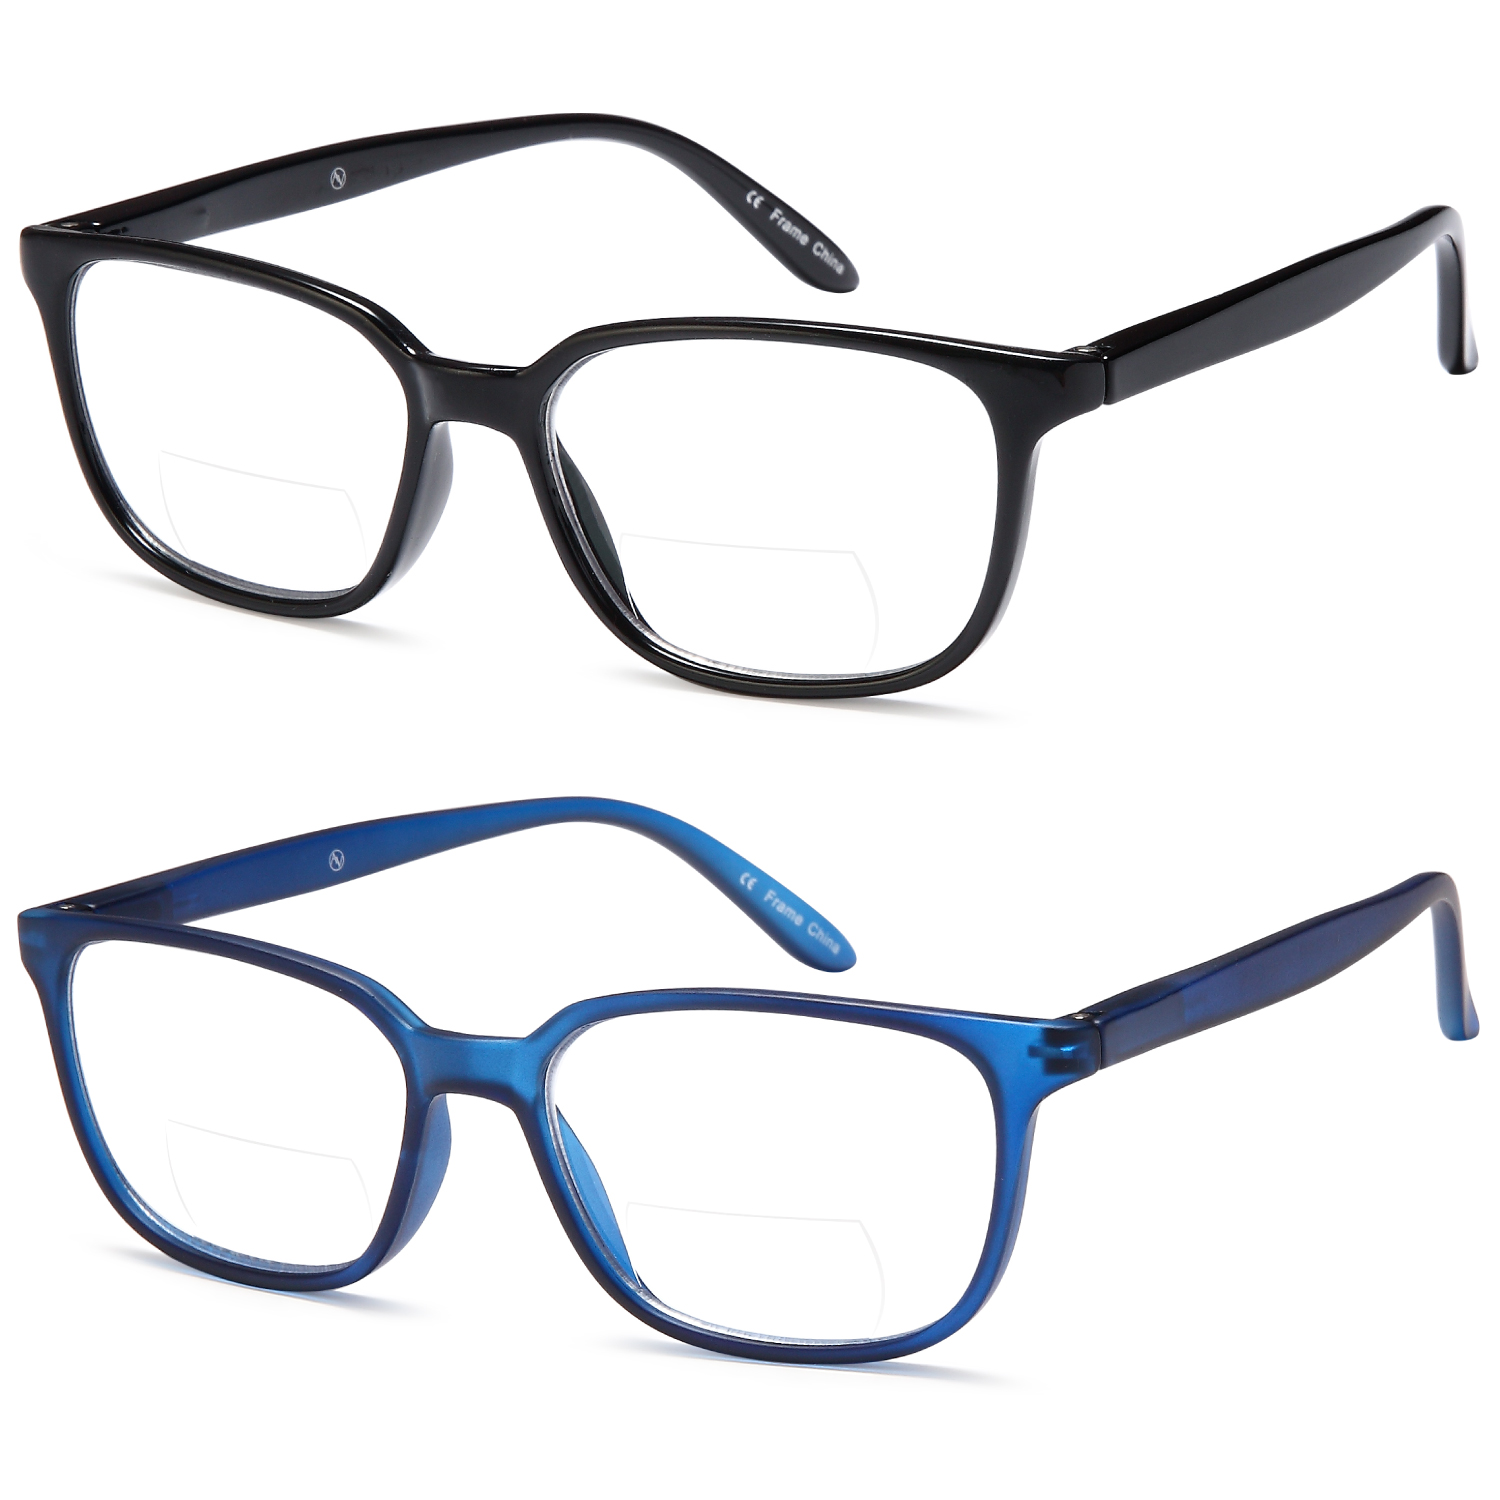 ALTEC VISION Pack of 2 Classic Style Bifocal Readers Spring Hinge Reading Glasses - 1.00x